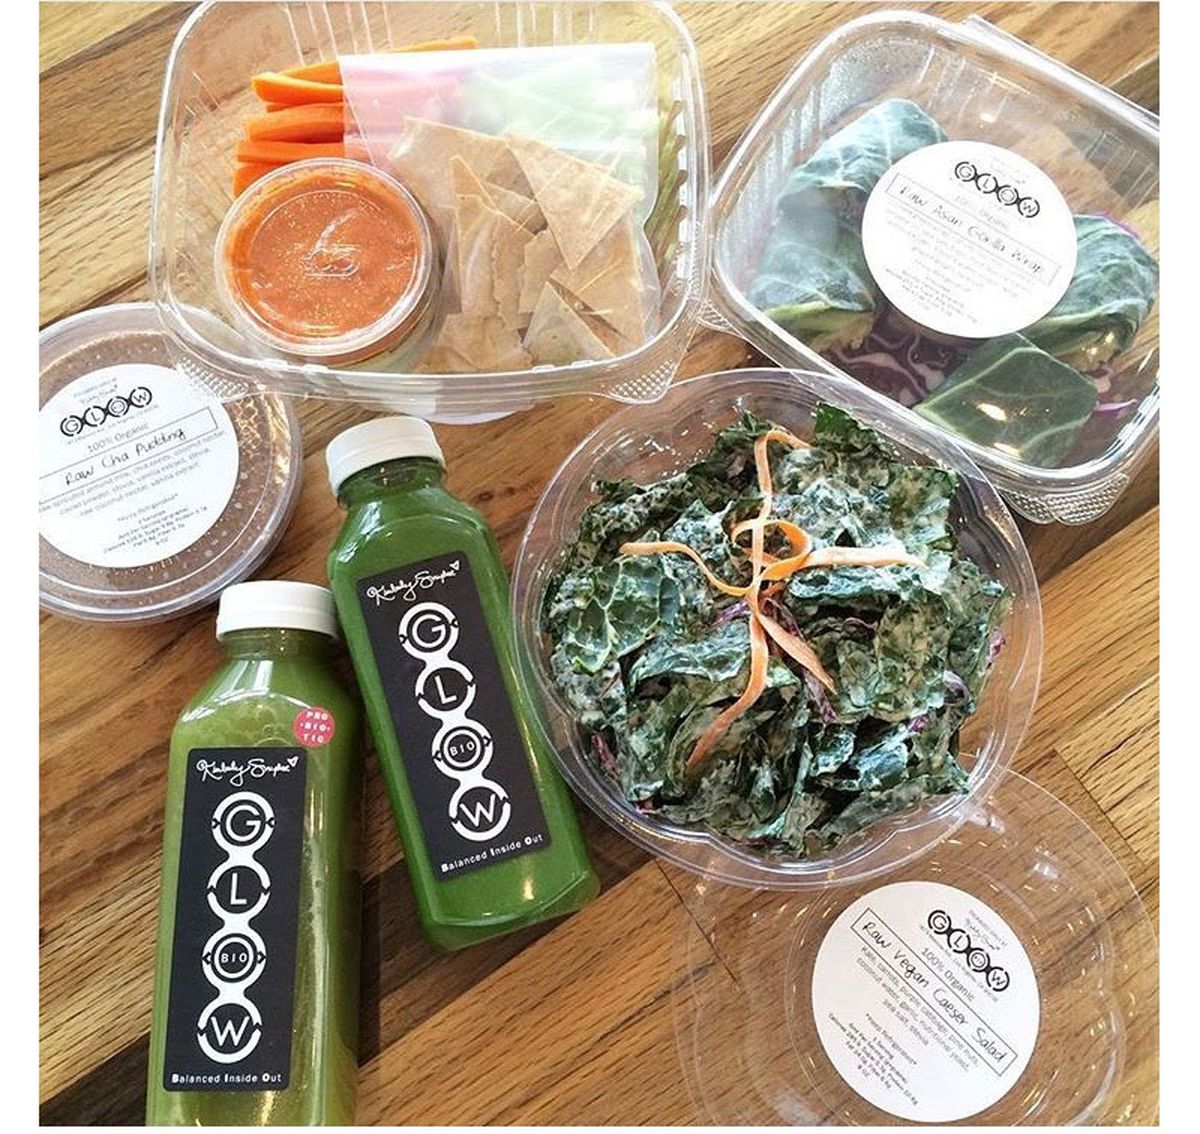 Can You Take Bio Cleanse With Food